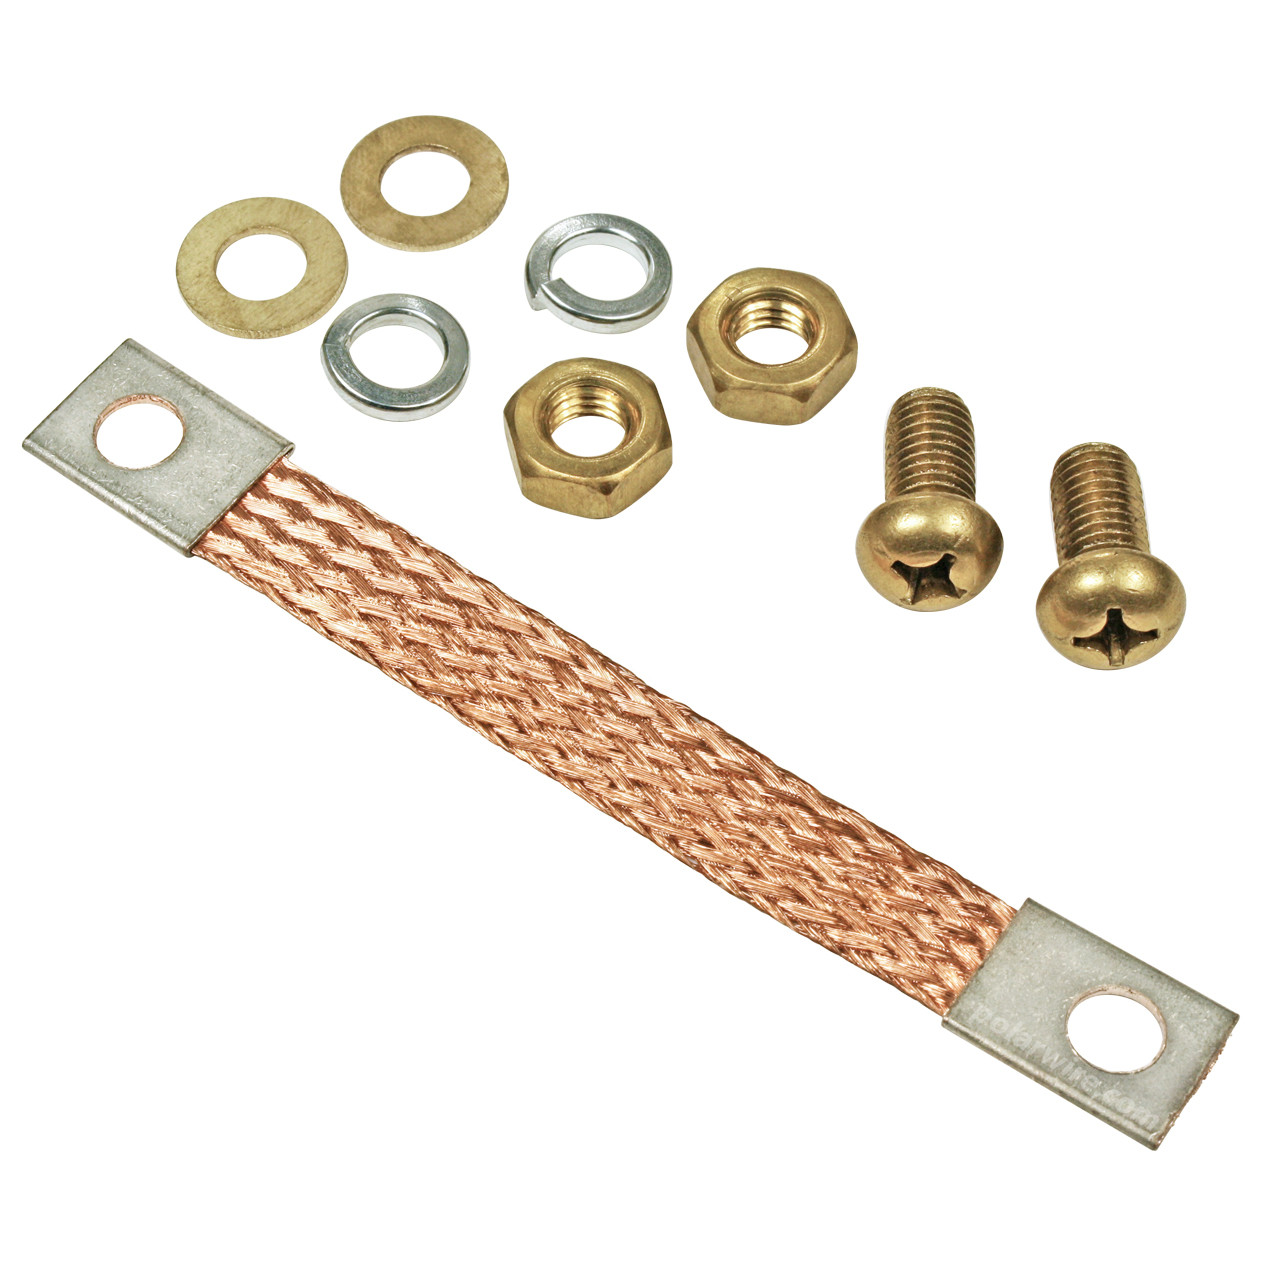 "Braided Copper Bonding Strap and Hardware Kit for converting 1000 AMP replacement jumper clamps to dual live jaw and attaching to 5/16"" stud eyelet lug cables"